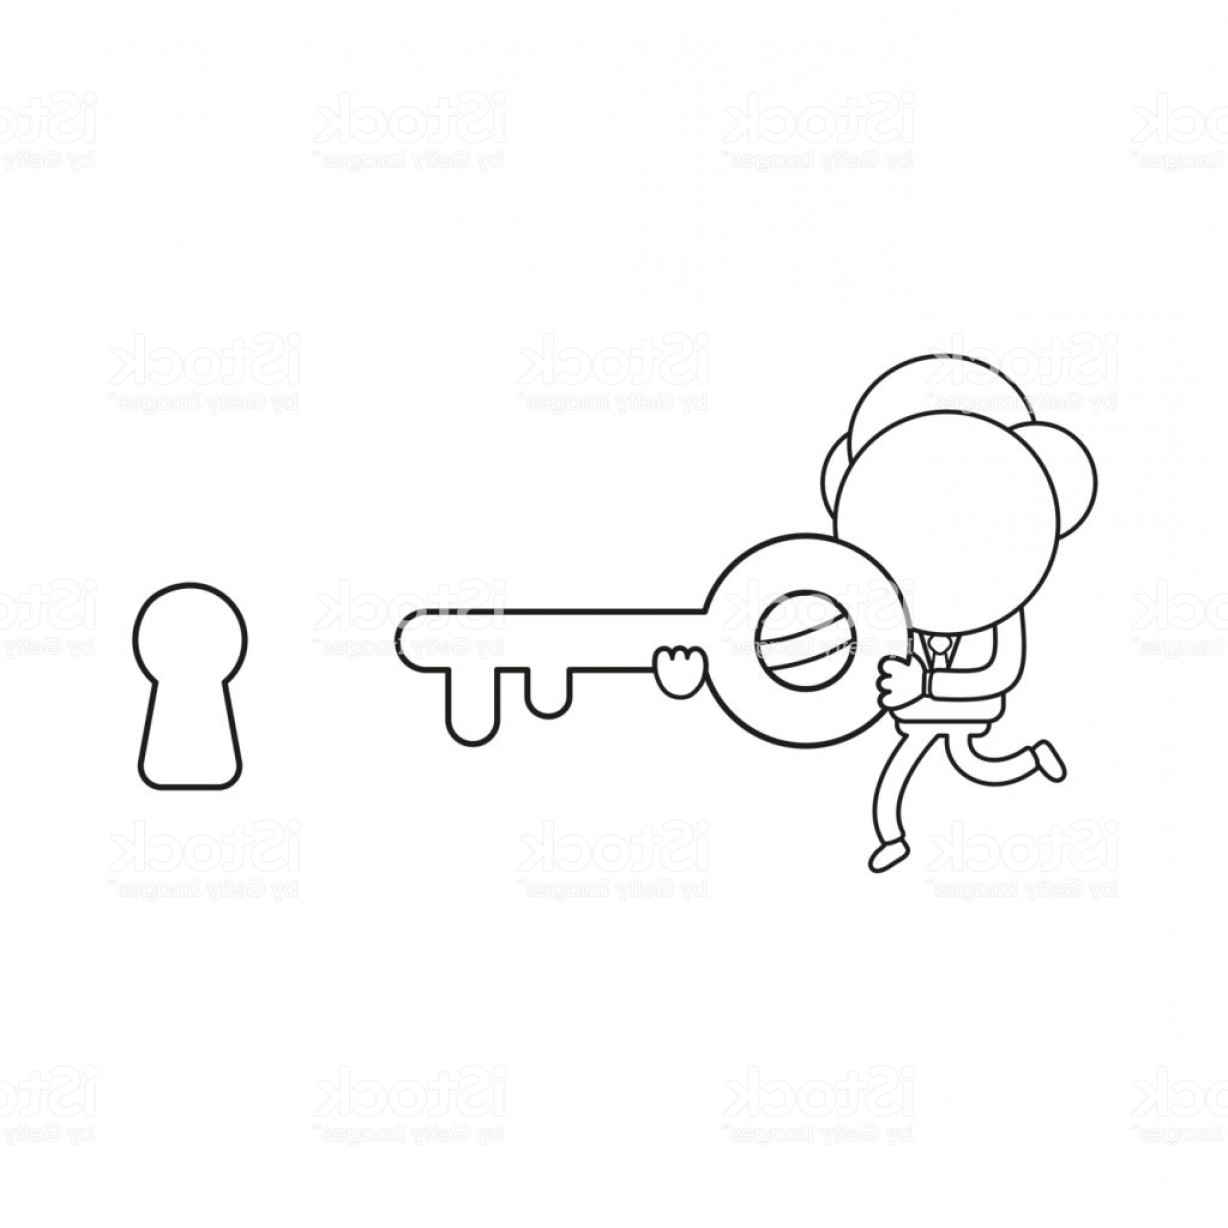 Keyholes And Key Vector Art: Vector Illustration Of Businessman Character Running And Carrying Key To Keyhole Gm